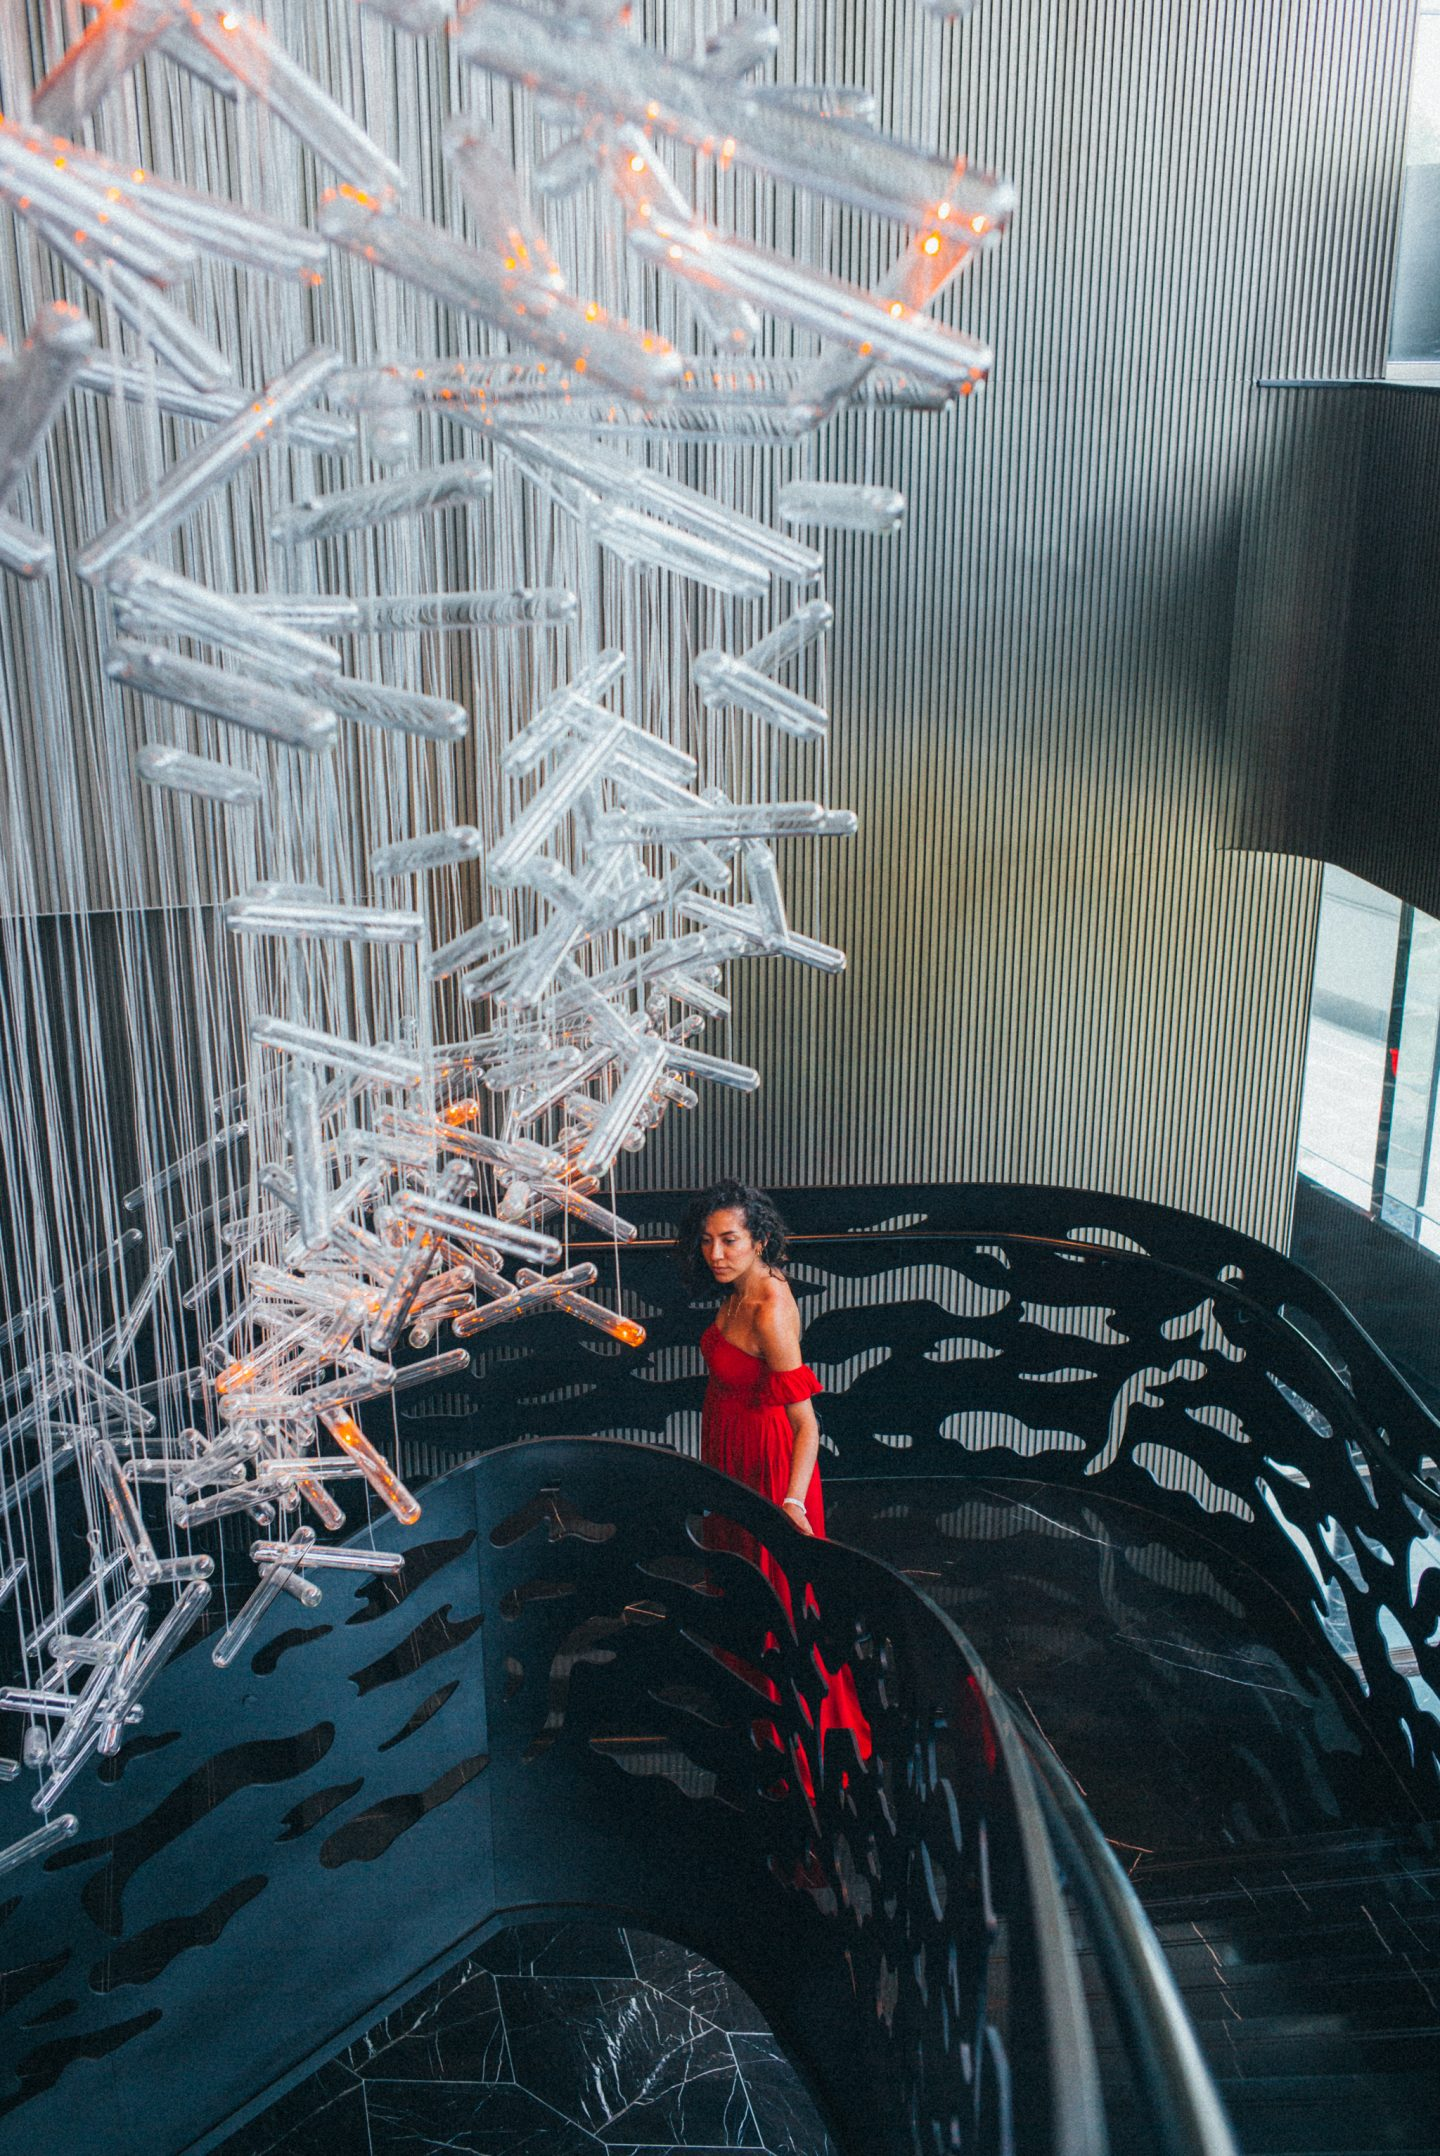 W Shanghai interior design women in red dress